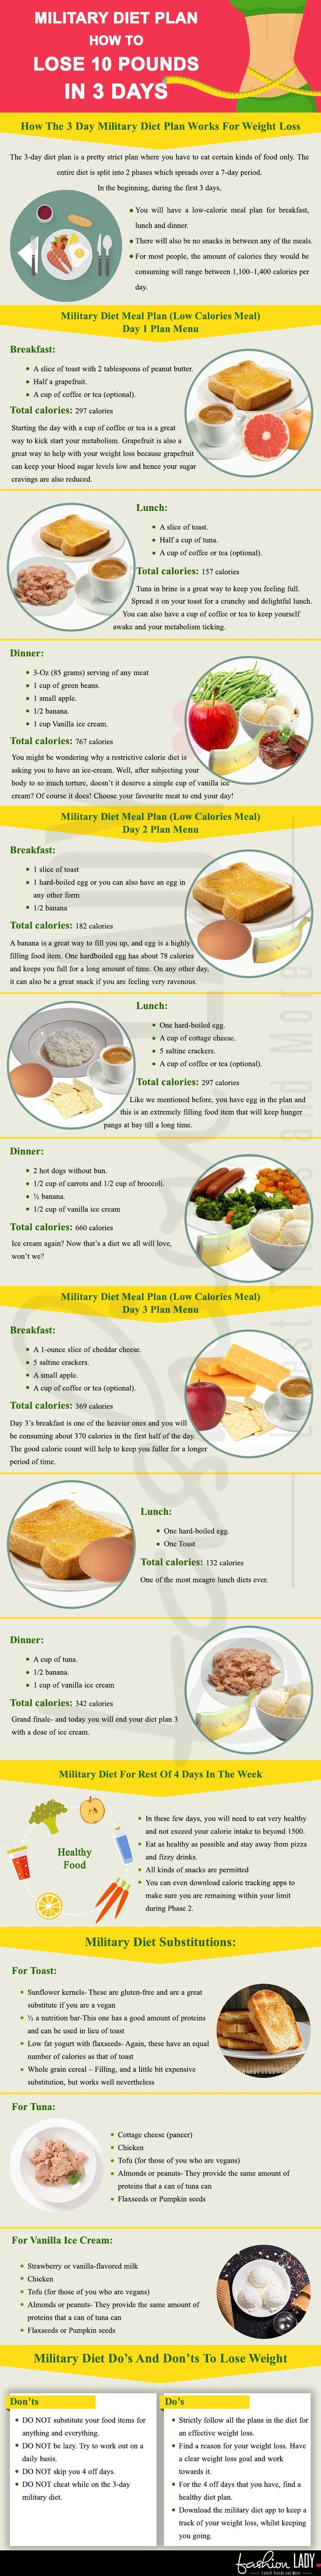 The Military Diet: A Beginner's Guide (with a meal plan)